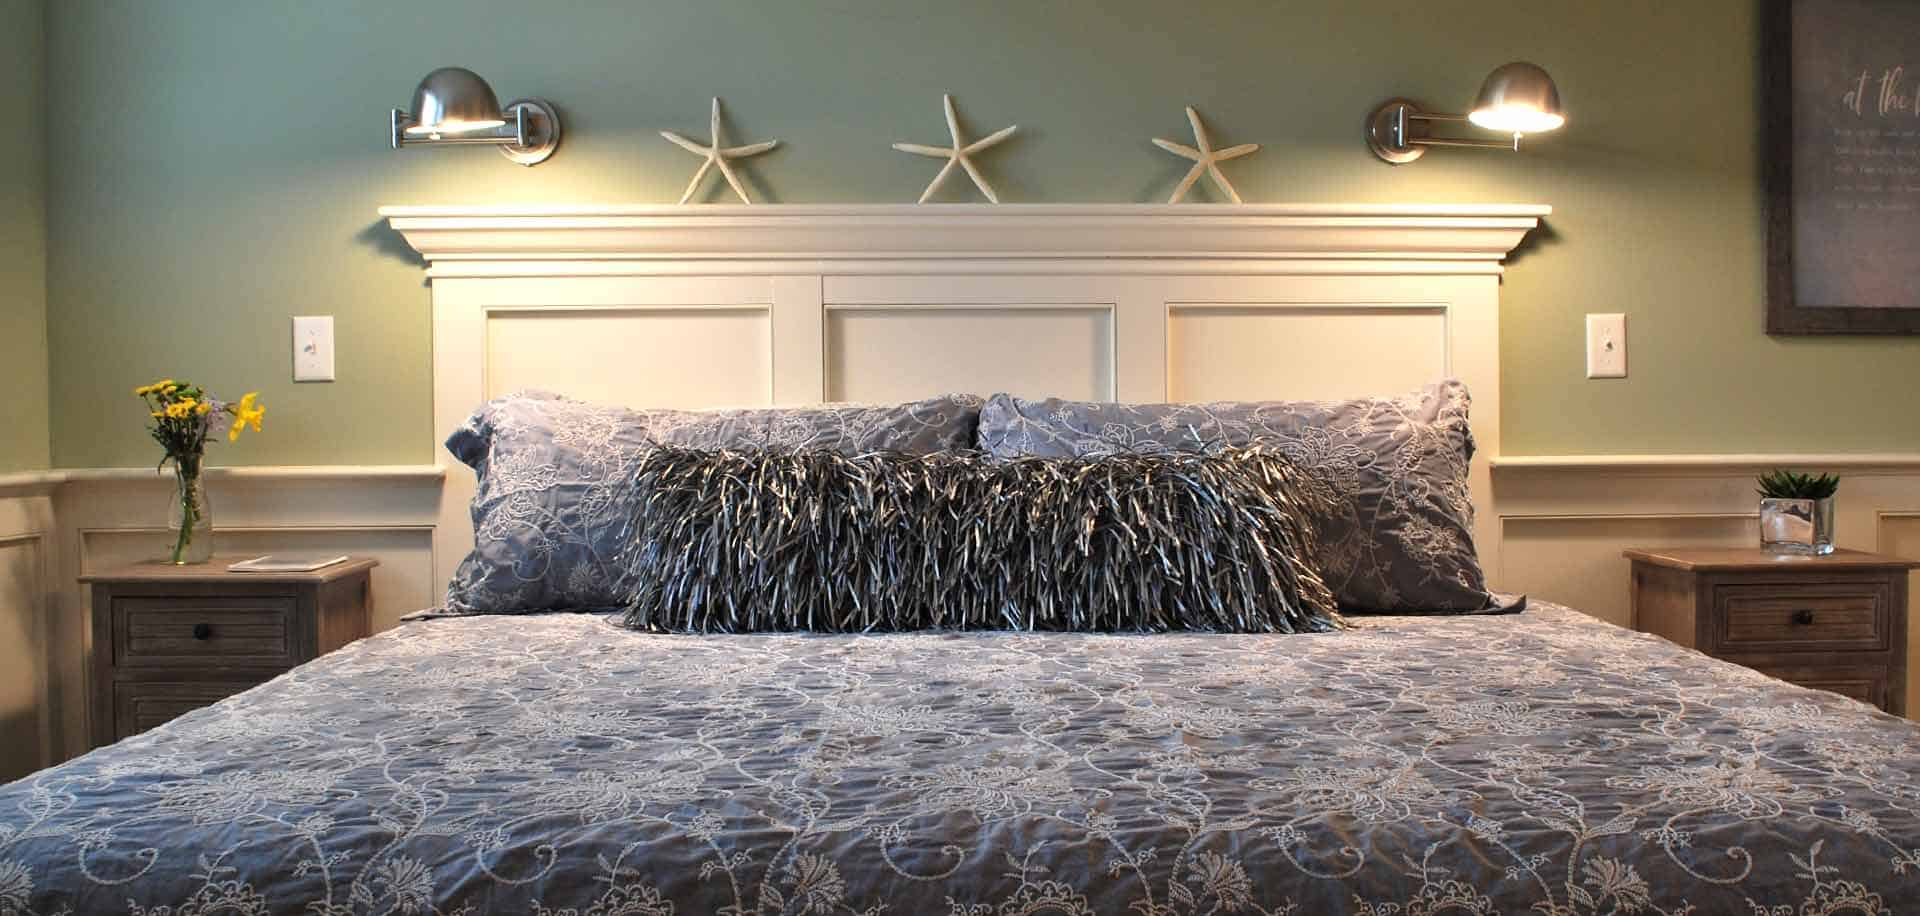 A chic gray bedspread and pillows with starfish decor above the headboard